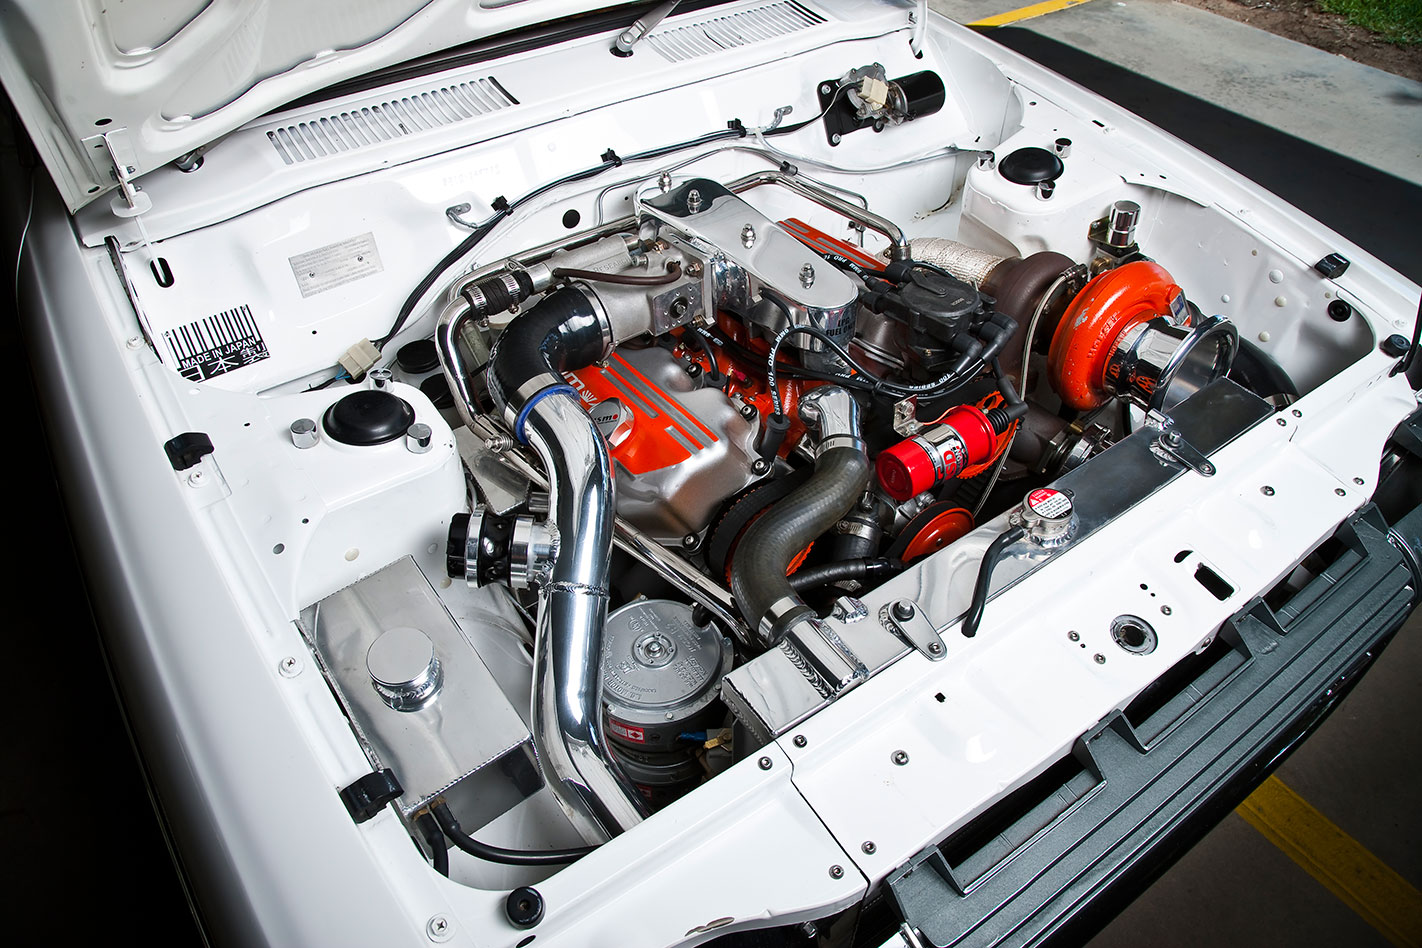 ULTIMATE SLEEPER: 11-SECOND DATSUN 120Y TURBO V6